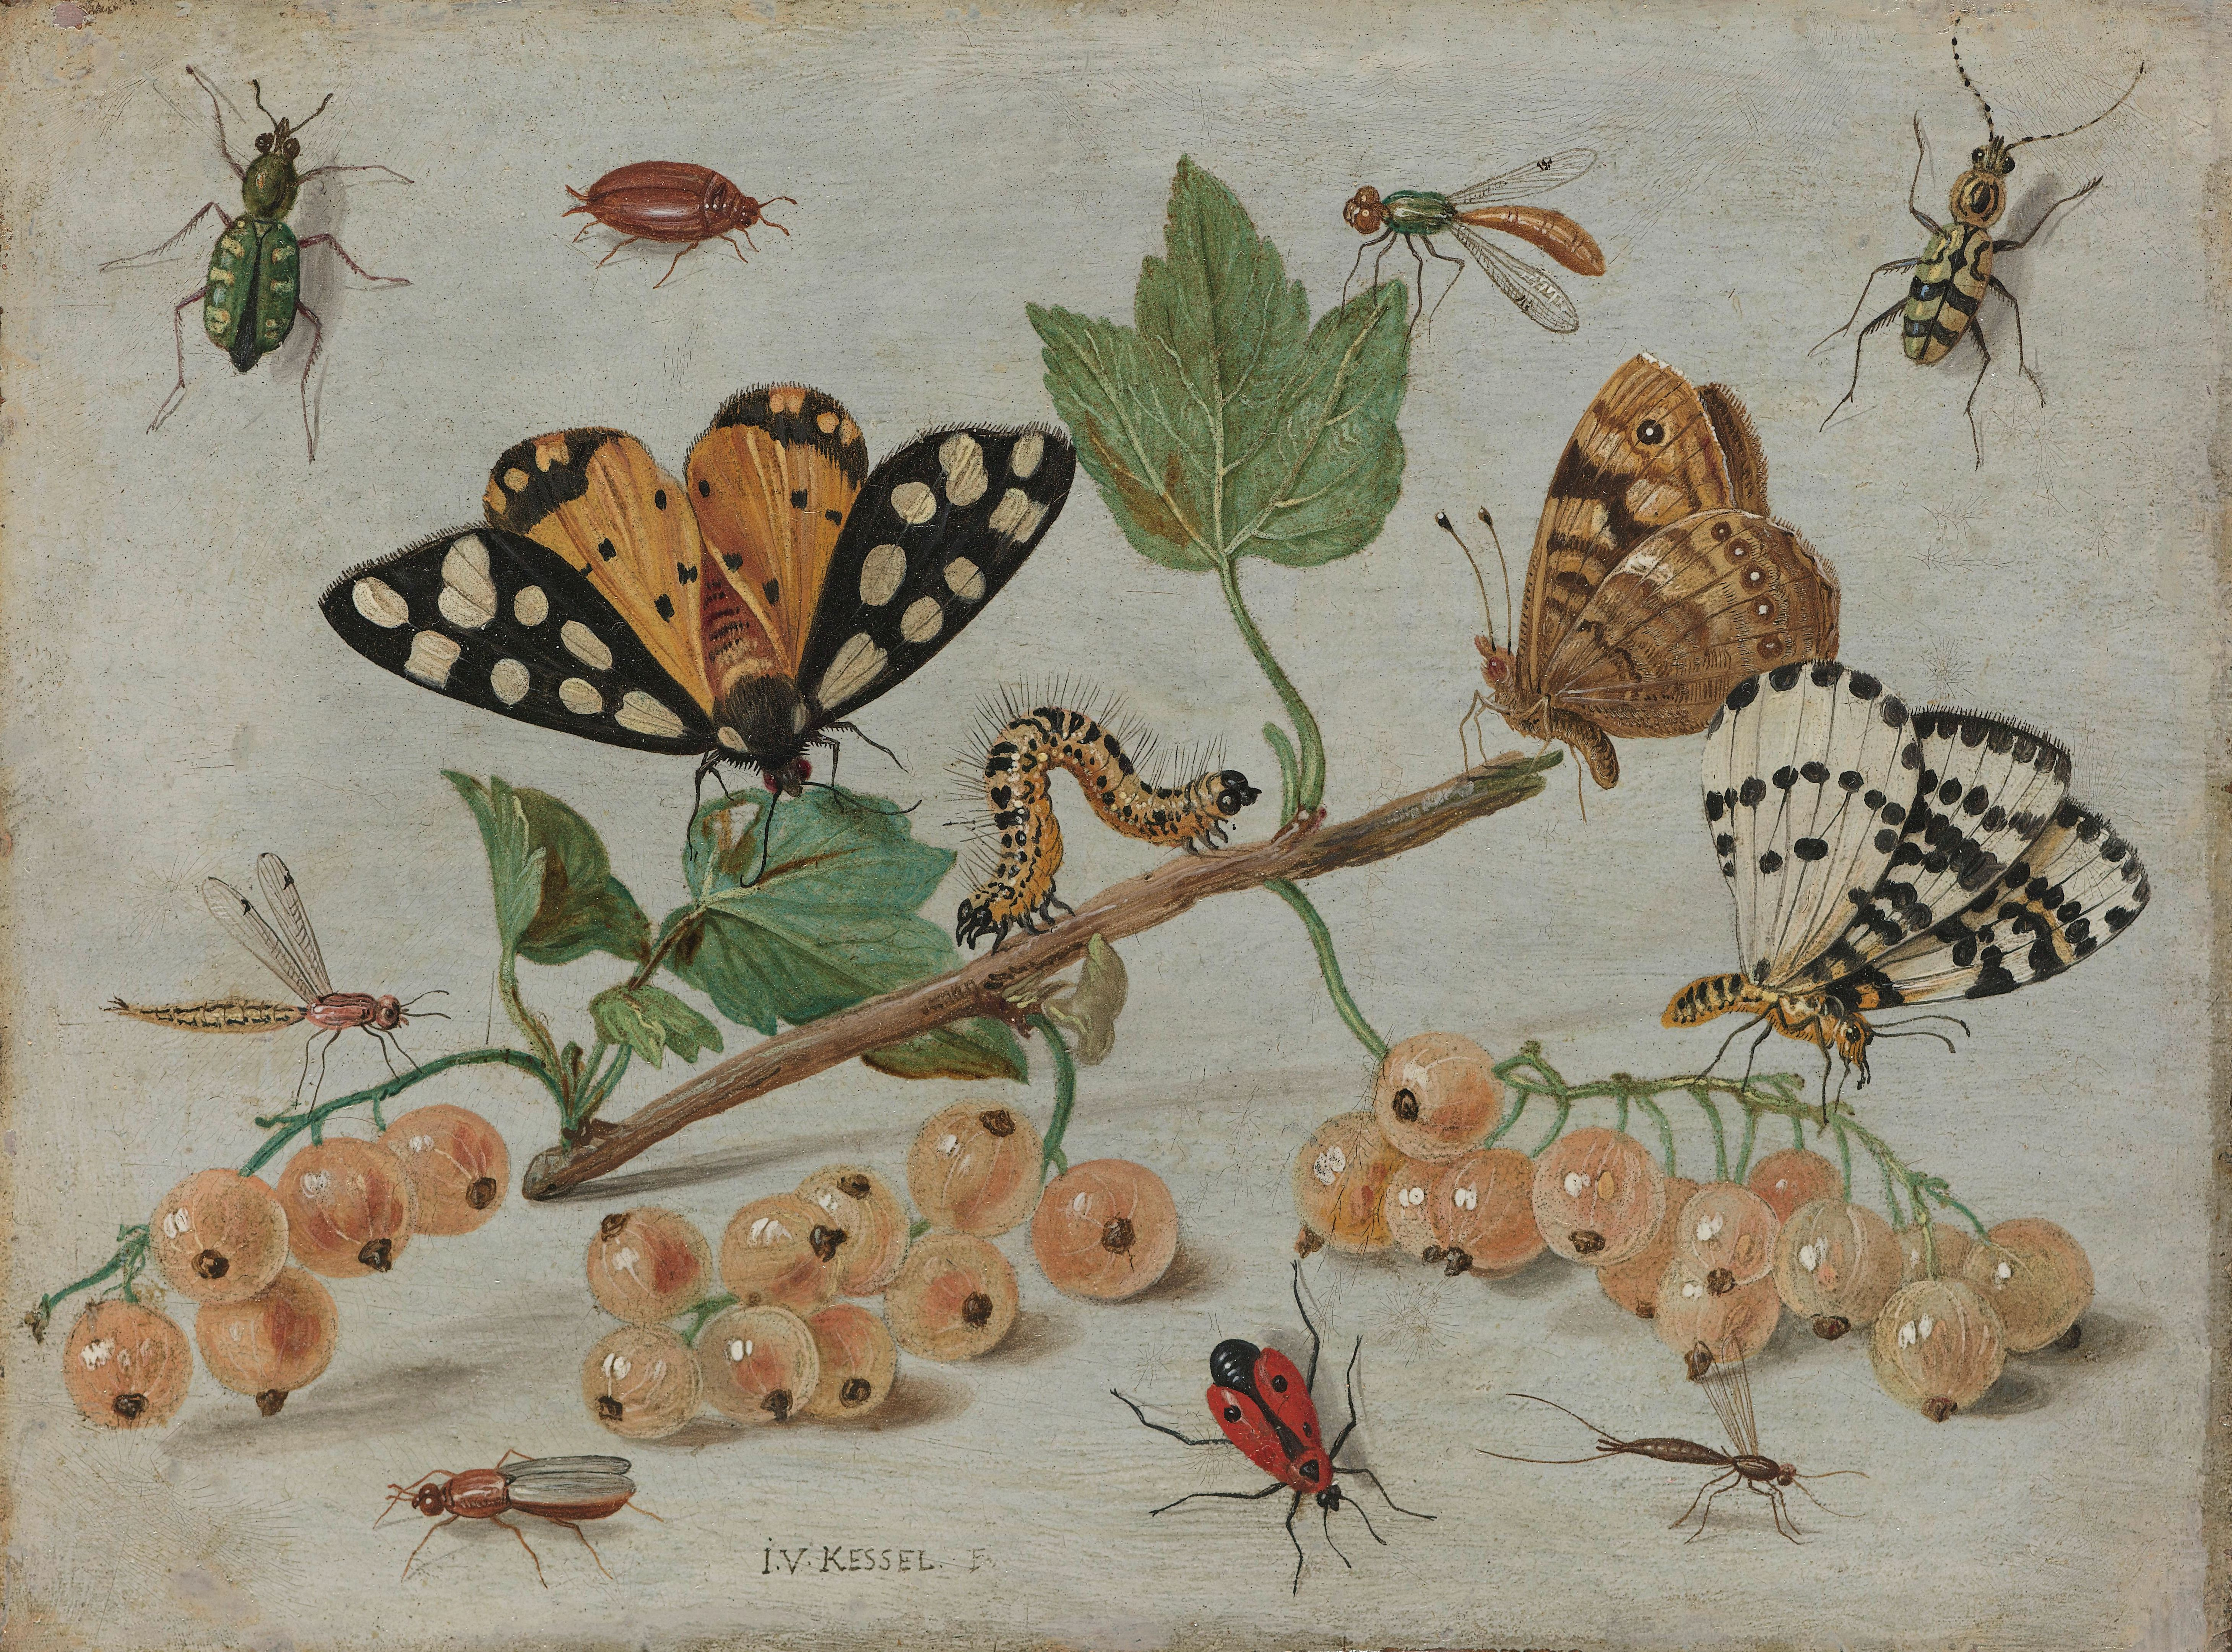 Illustration of insects and fruit